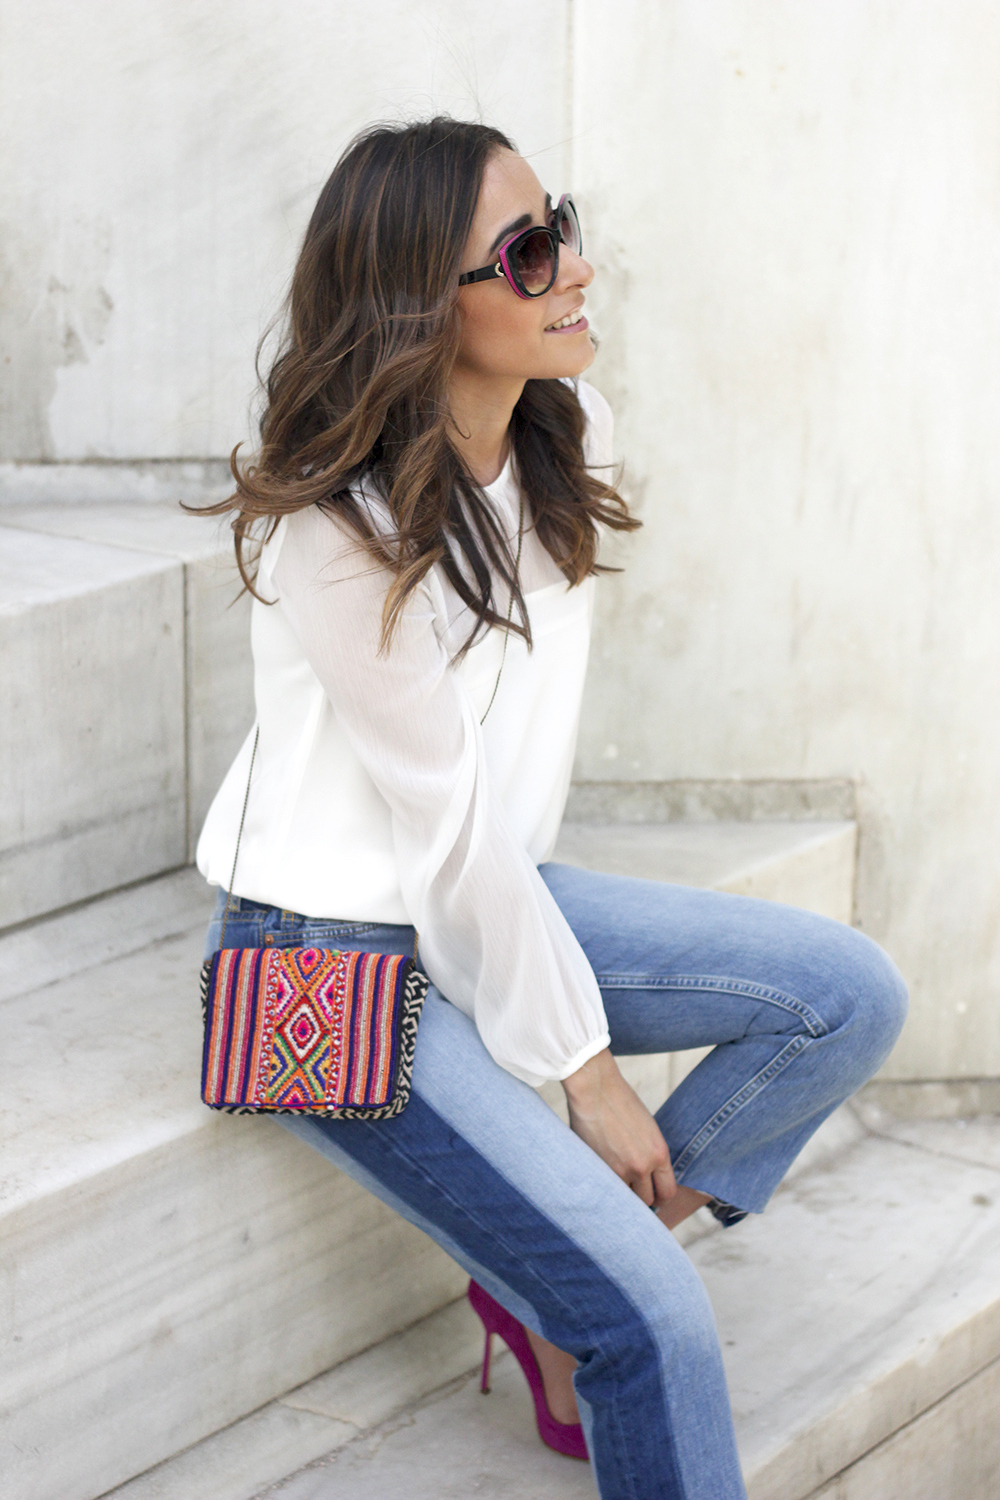 Boyfriend Jeans With Asymmetrical Hems white blouse carolina herrera heels daydaday bag outfit style streetstyle14